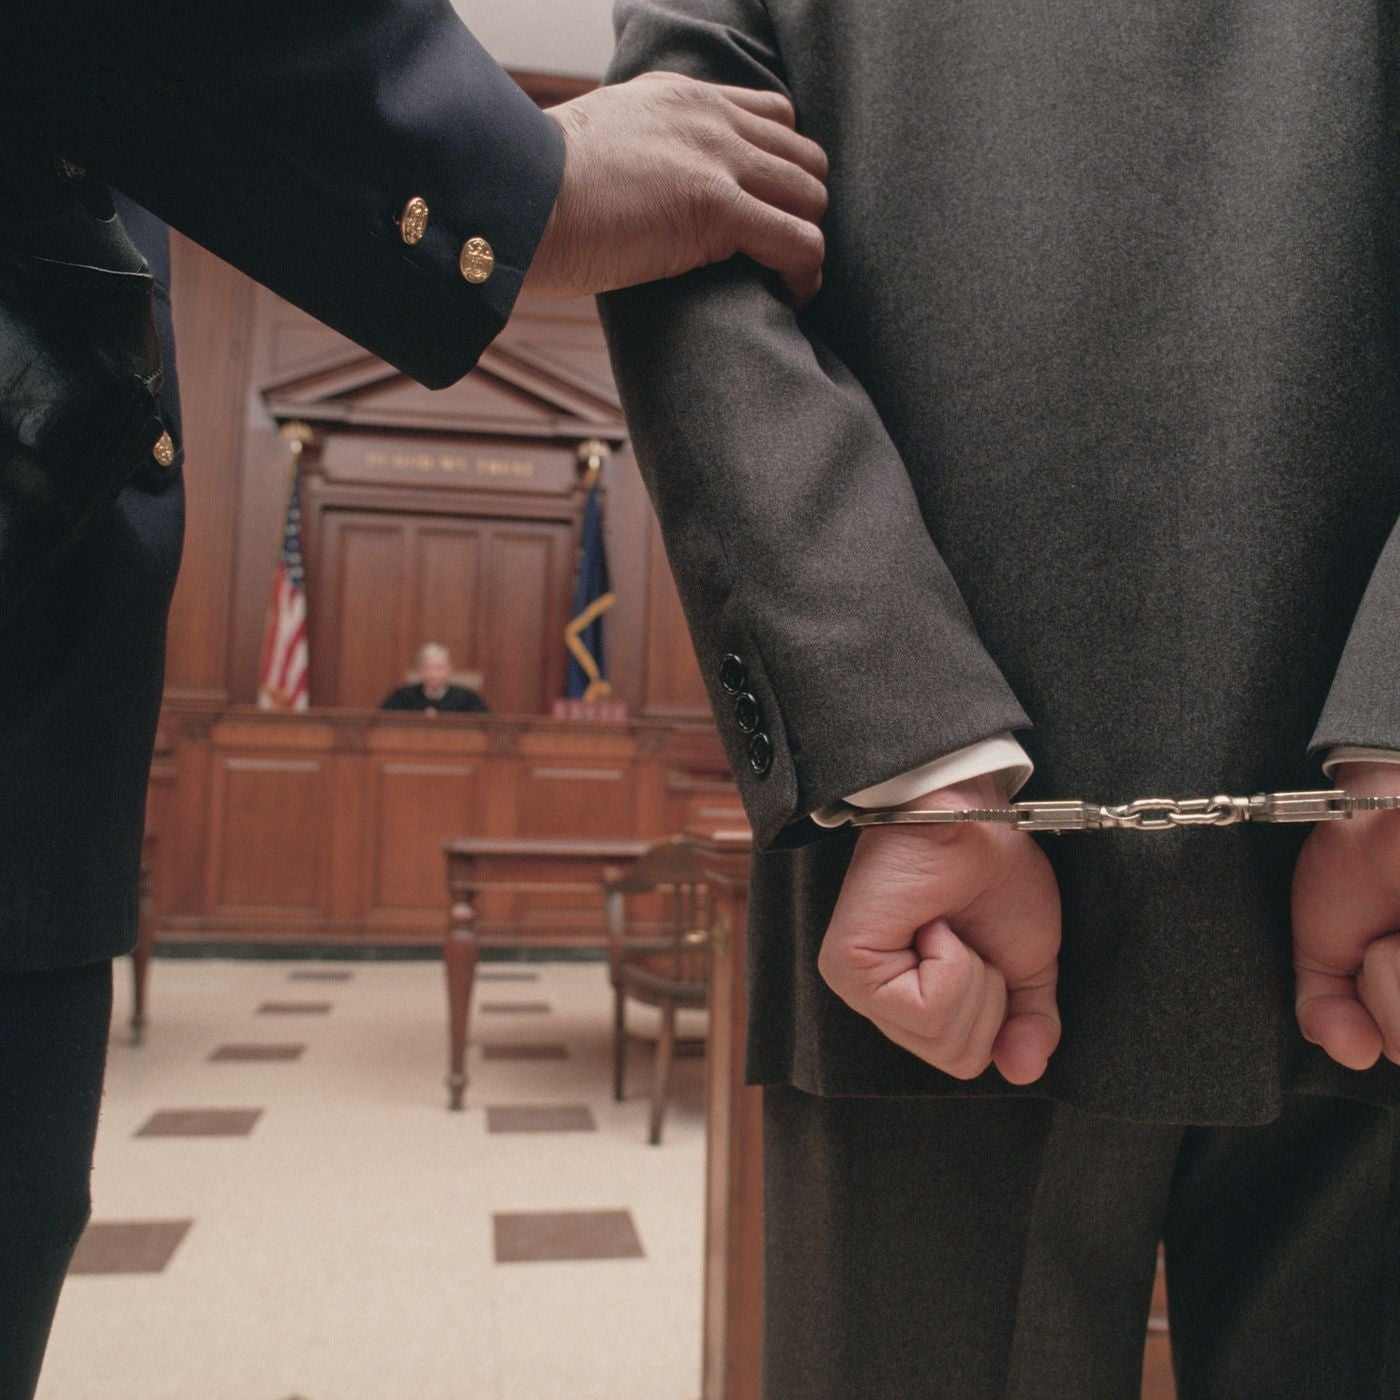 DO YOU KNOW WHAT HAPPENS WHEN YOU GET A FELONY CONVICTION?